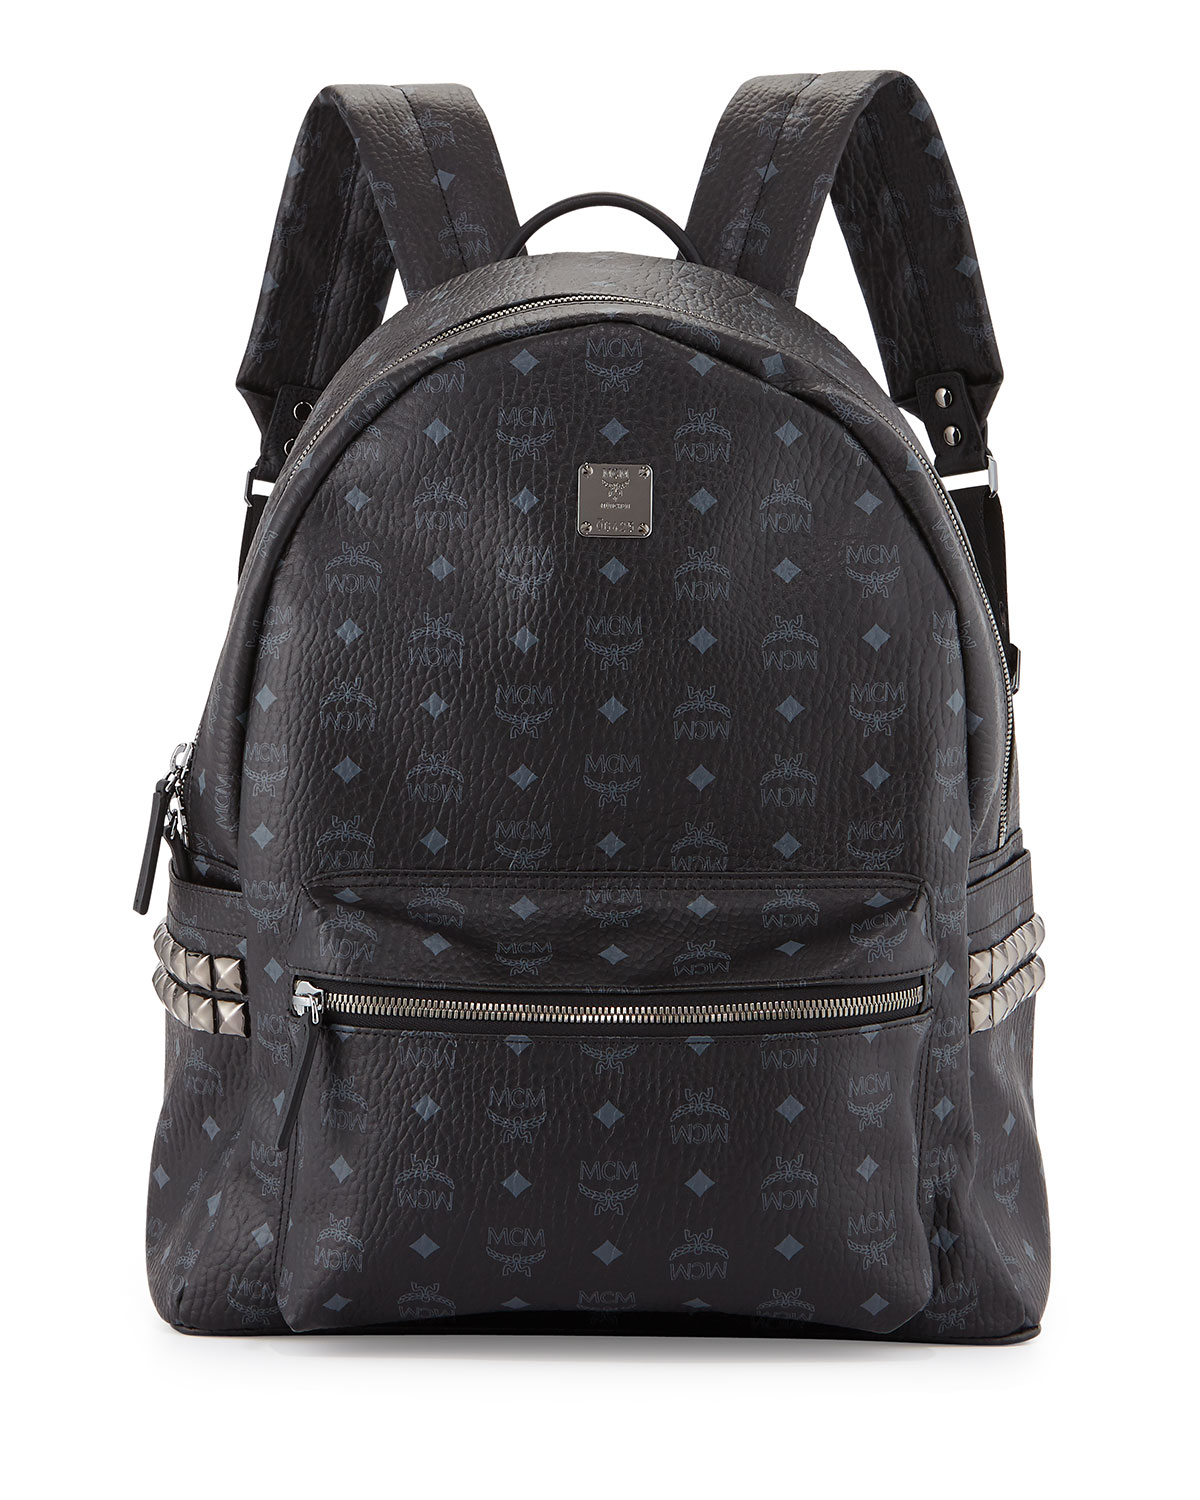 mcm stark side stud large backpack in black